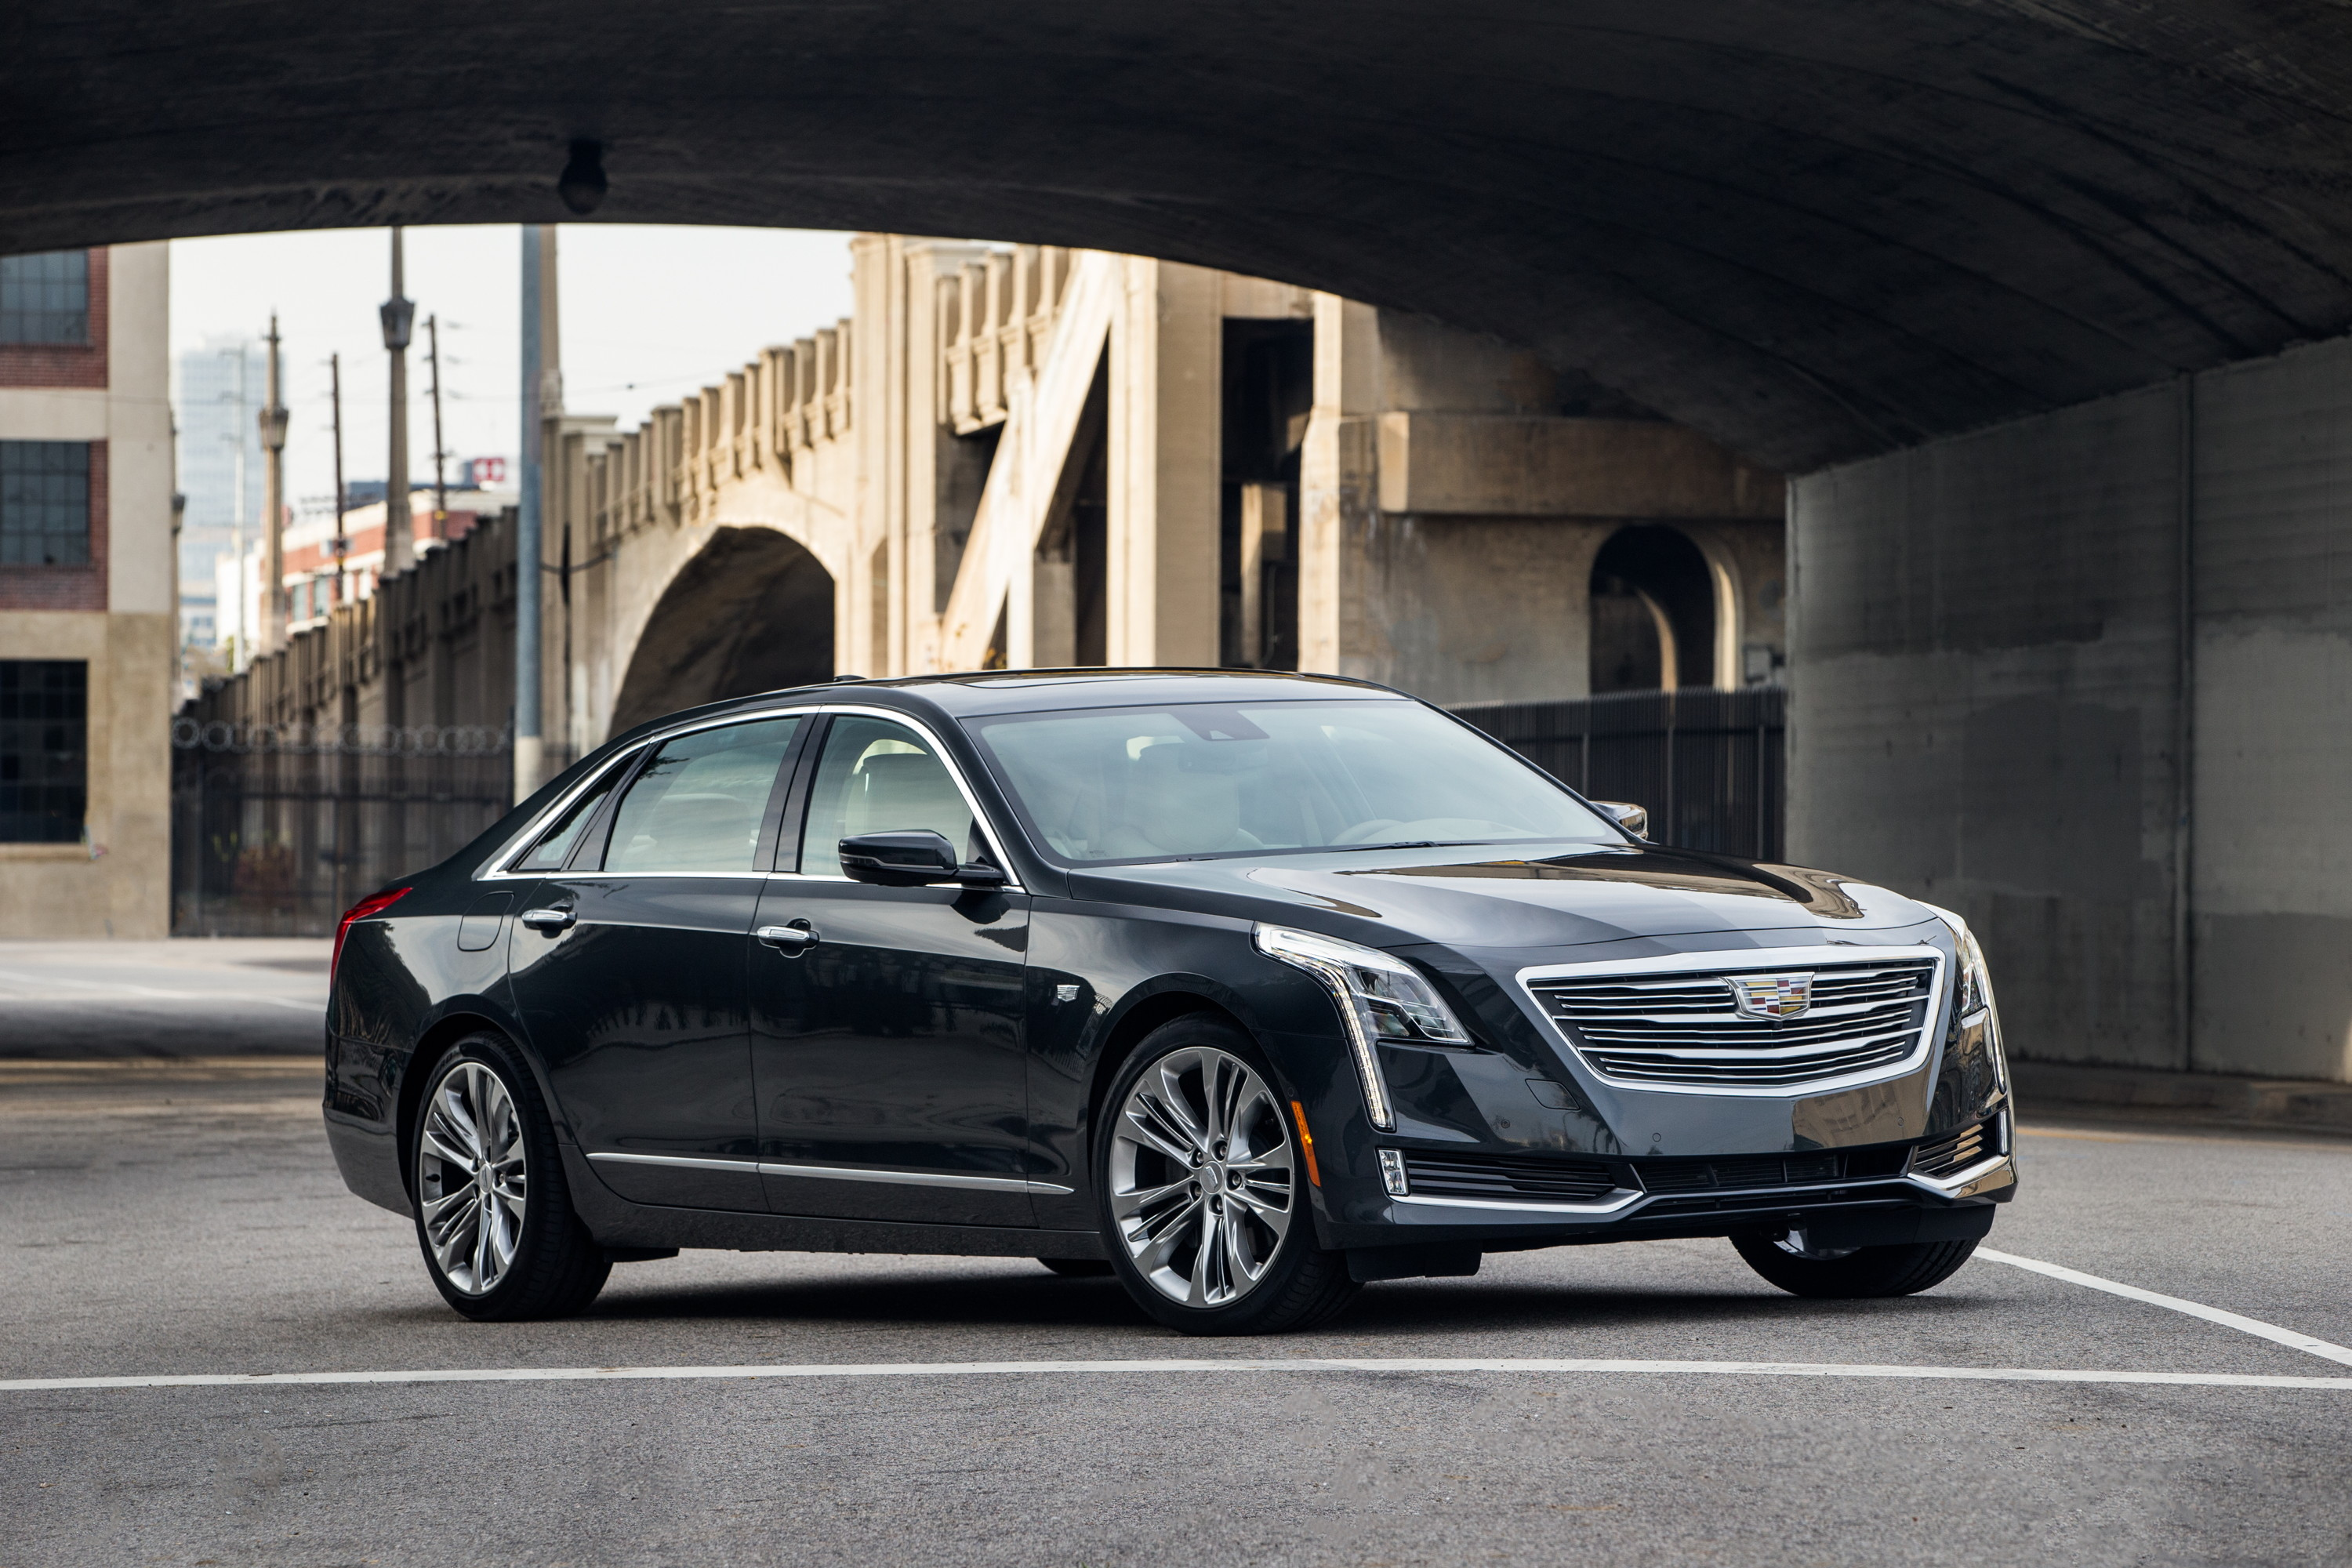 2016 cadillac ct6 first drive review. Black Bedroom Furniture Sets. Home Design Ideas